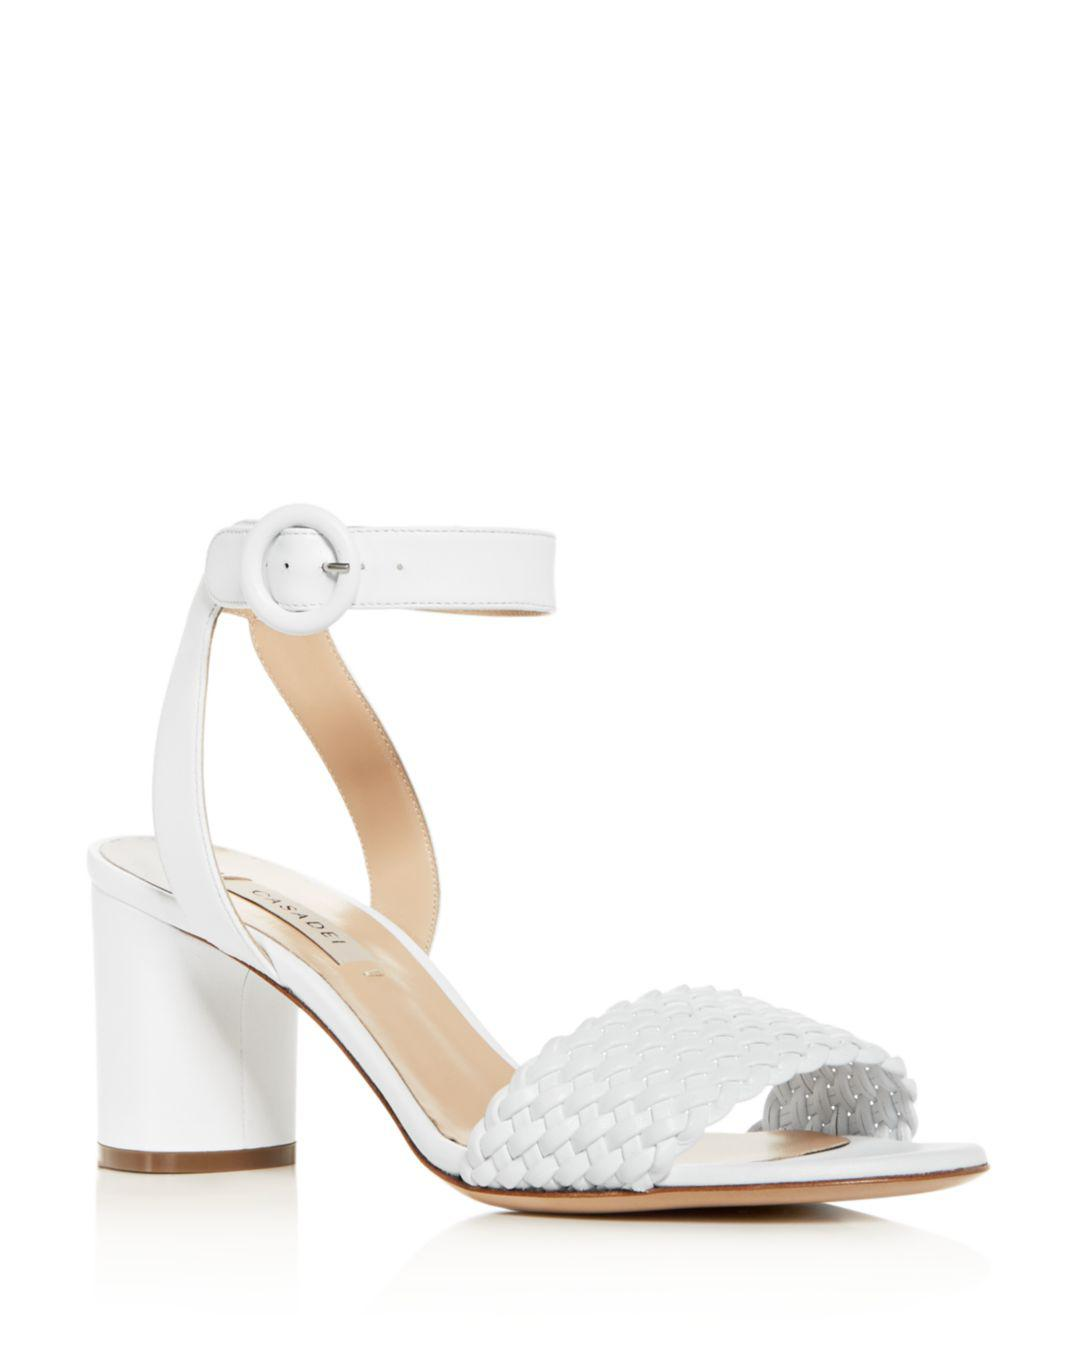 2624bce97 Lyst - Casadei Women s Woven Ankle-strap Block-heel Sandals in White